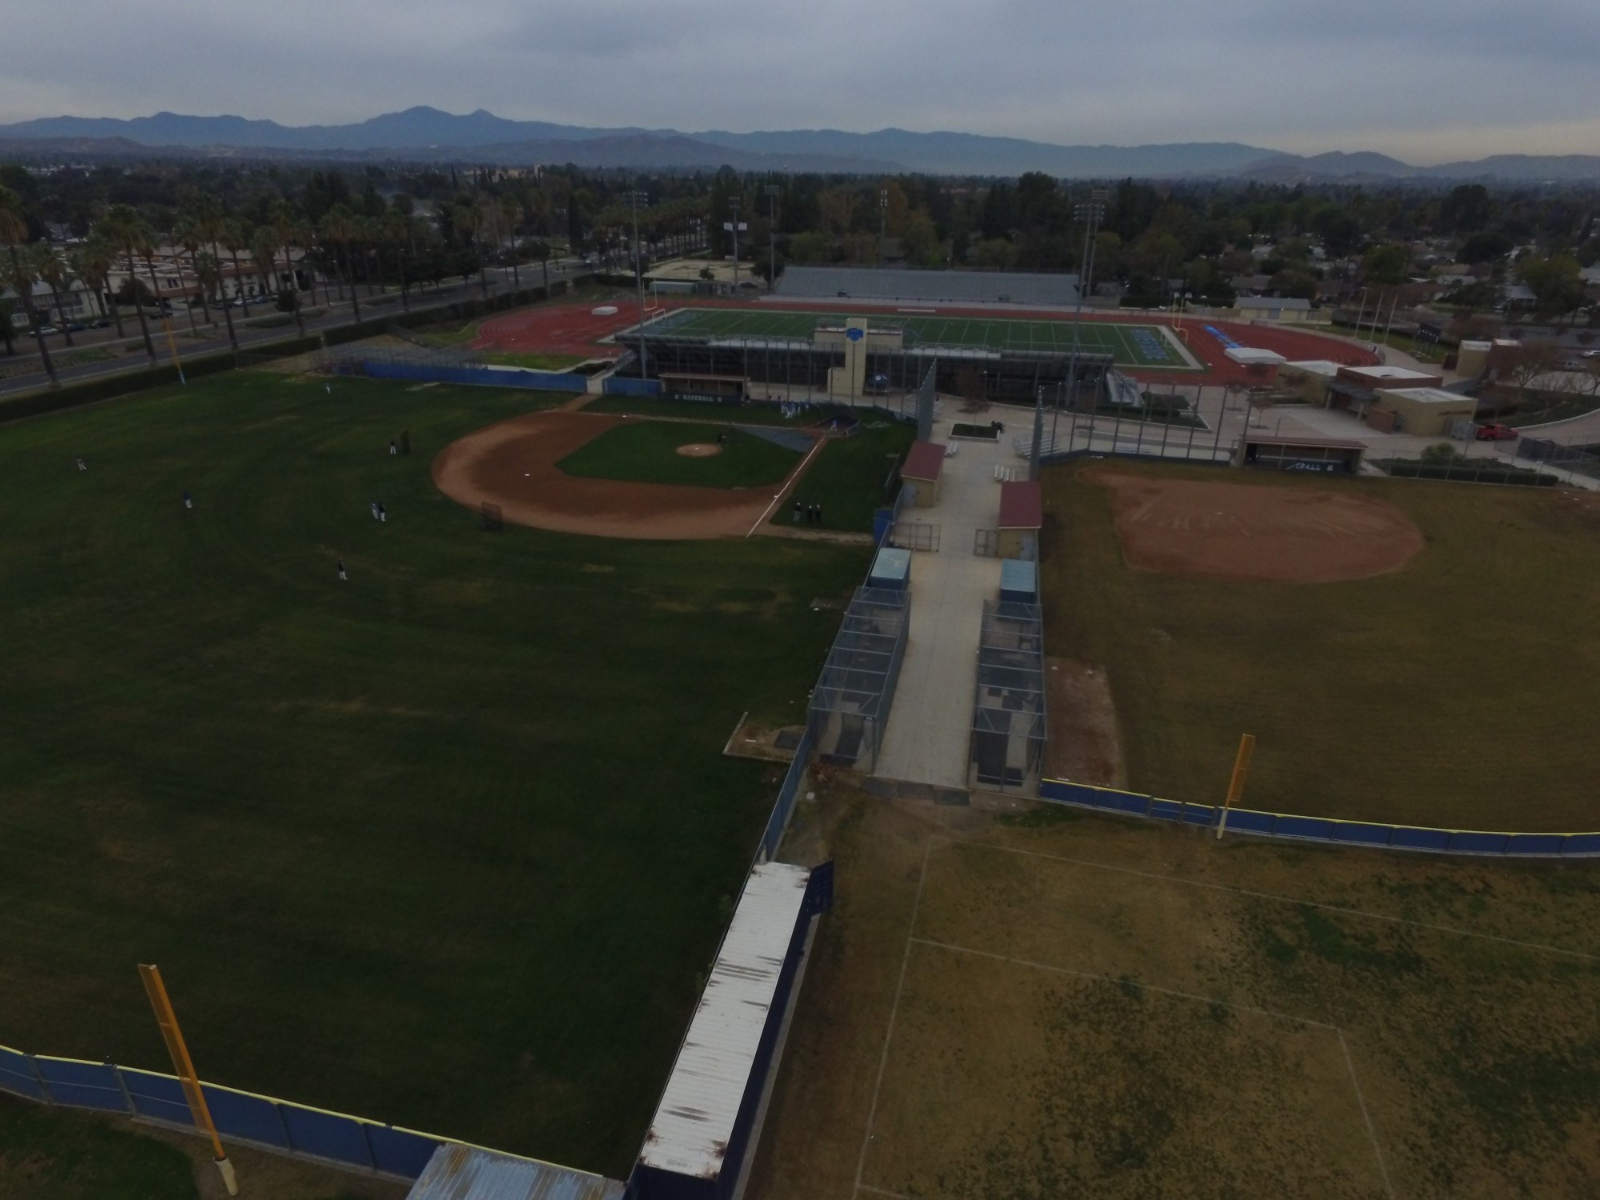 Baseball field's over-seeded turf ready for the season